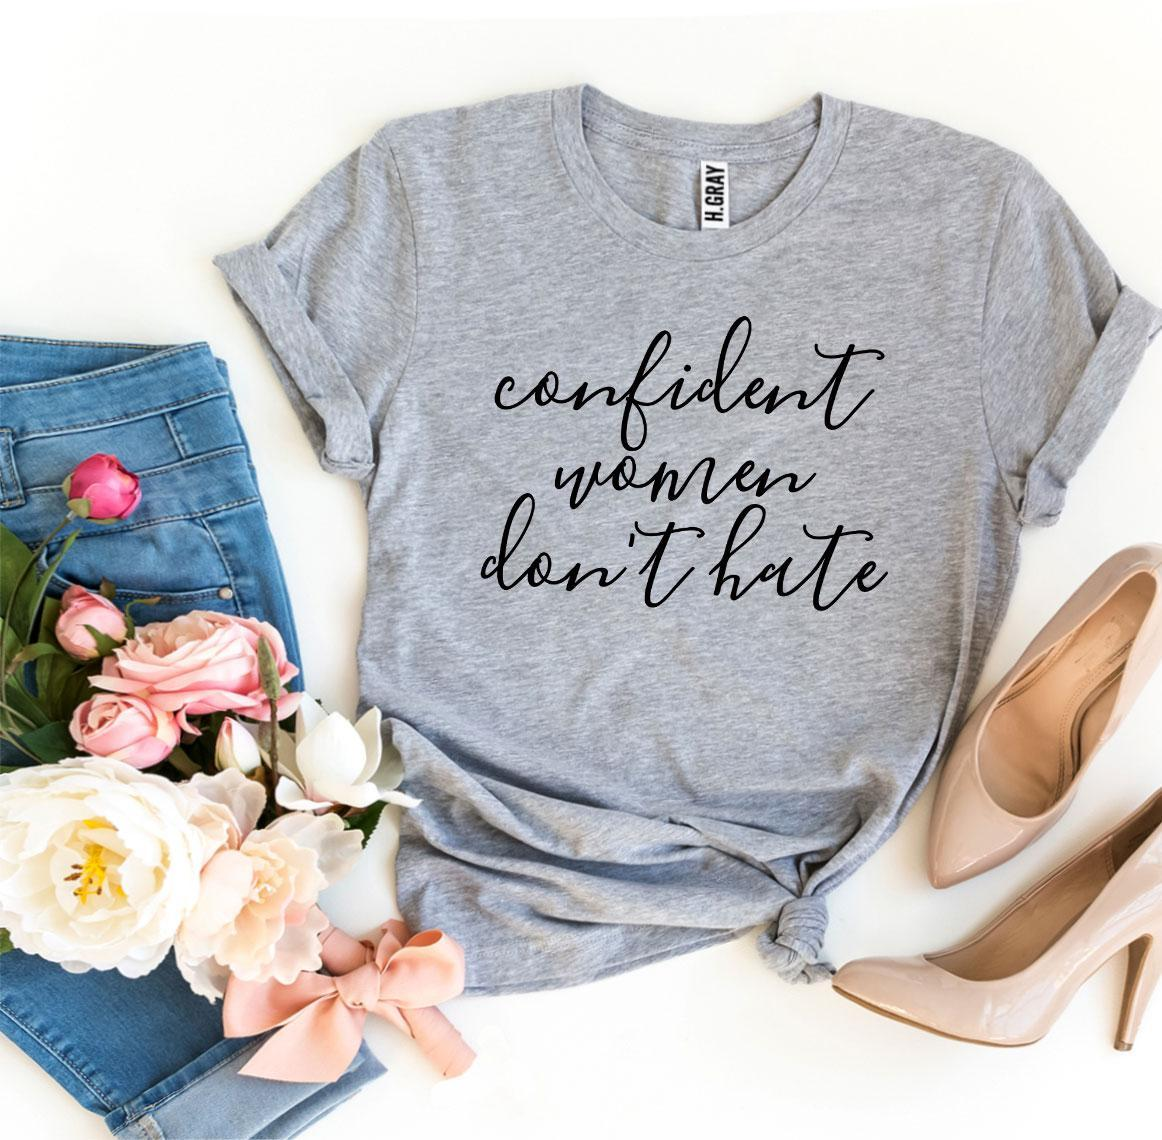 Bella canvas, heather gray, gray, peach, quote, confidence, women, girls, kids, hate, don't hate, confident women don't hate, navy, royal blue, pink, sunset, black, yellow, mustard, heather olive, dark gray, white, typography